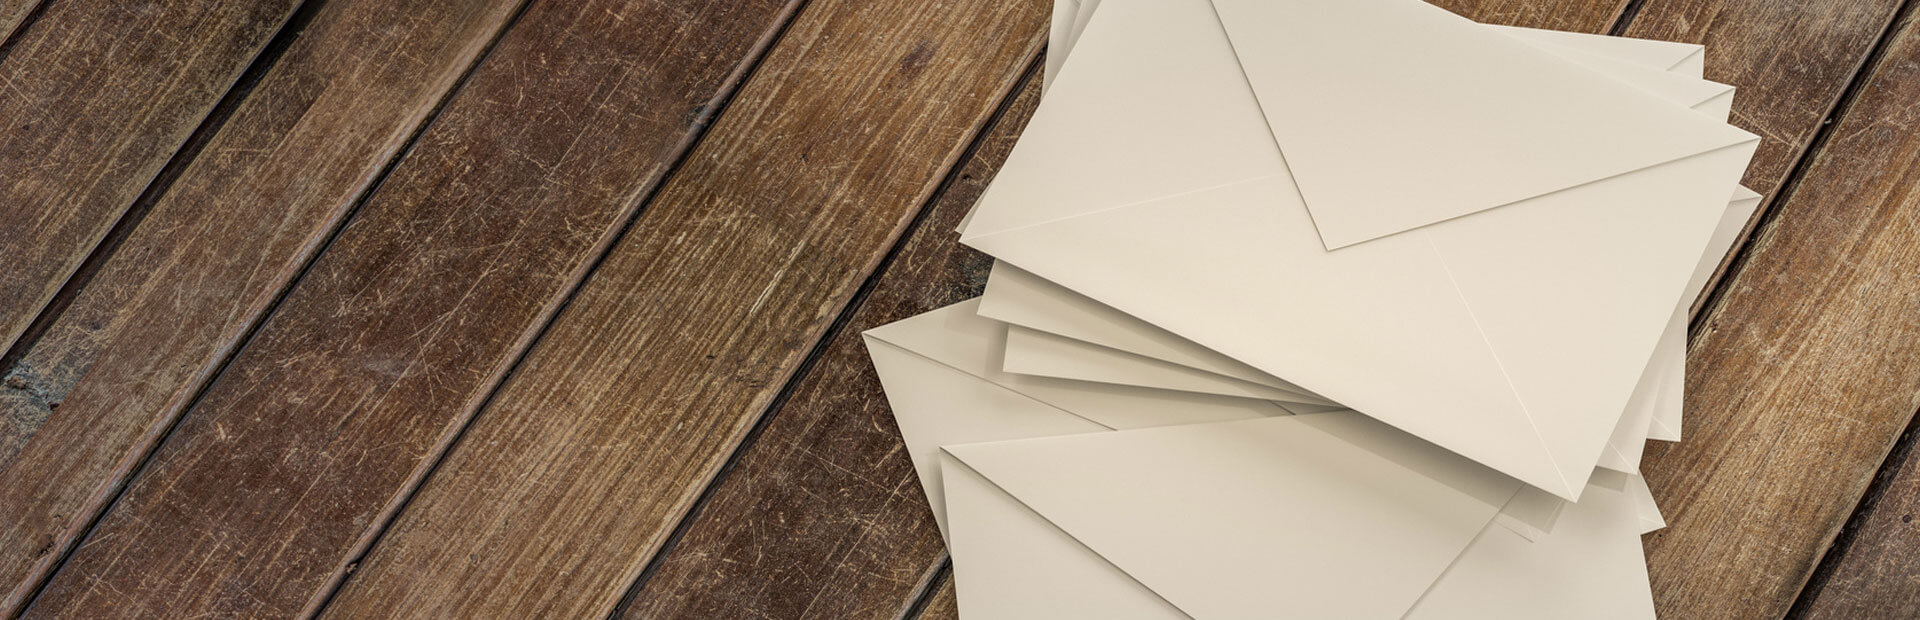 Envelope - Tape and Label Application